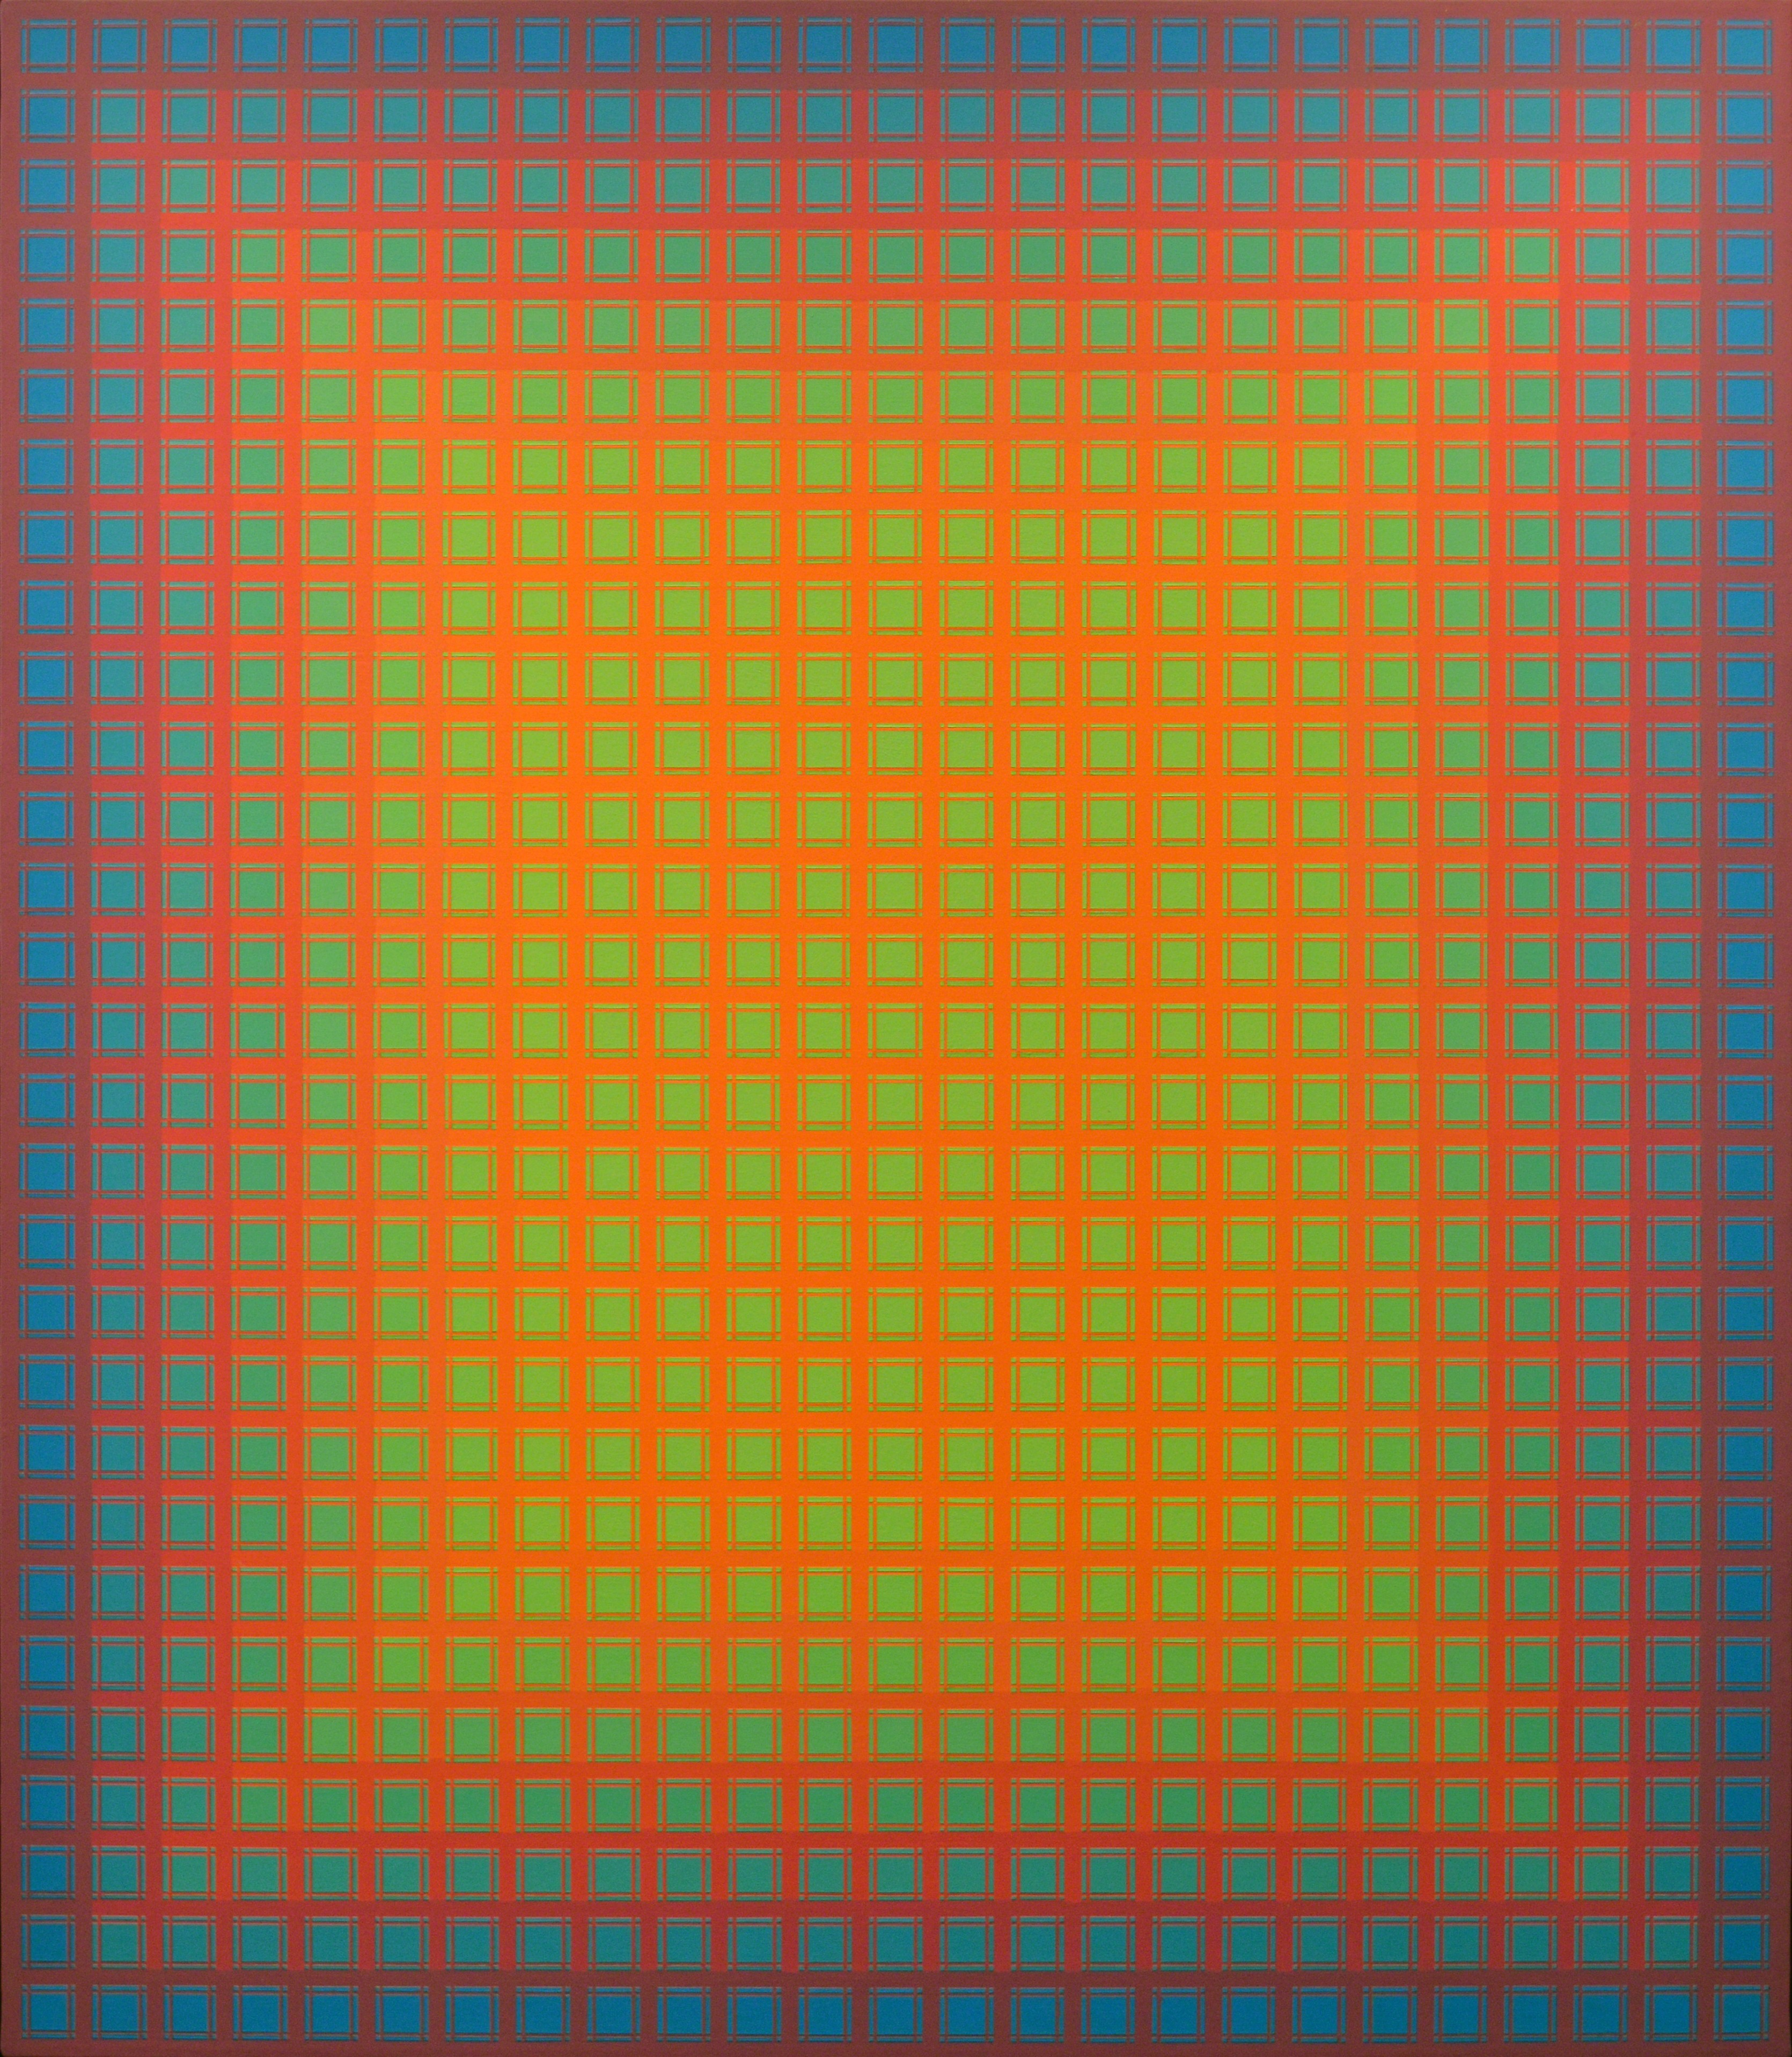 , 'Early Color,' 1980, The Bonfoey Gallery